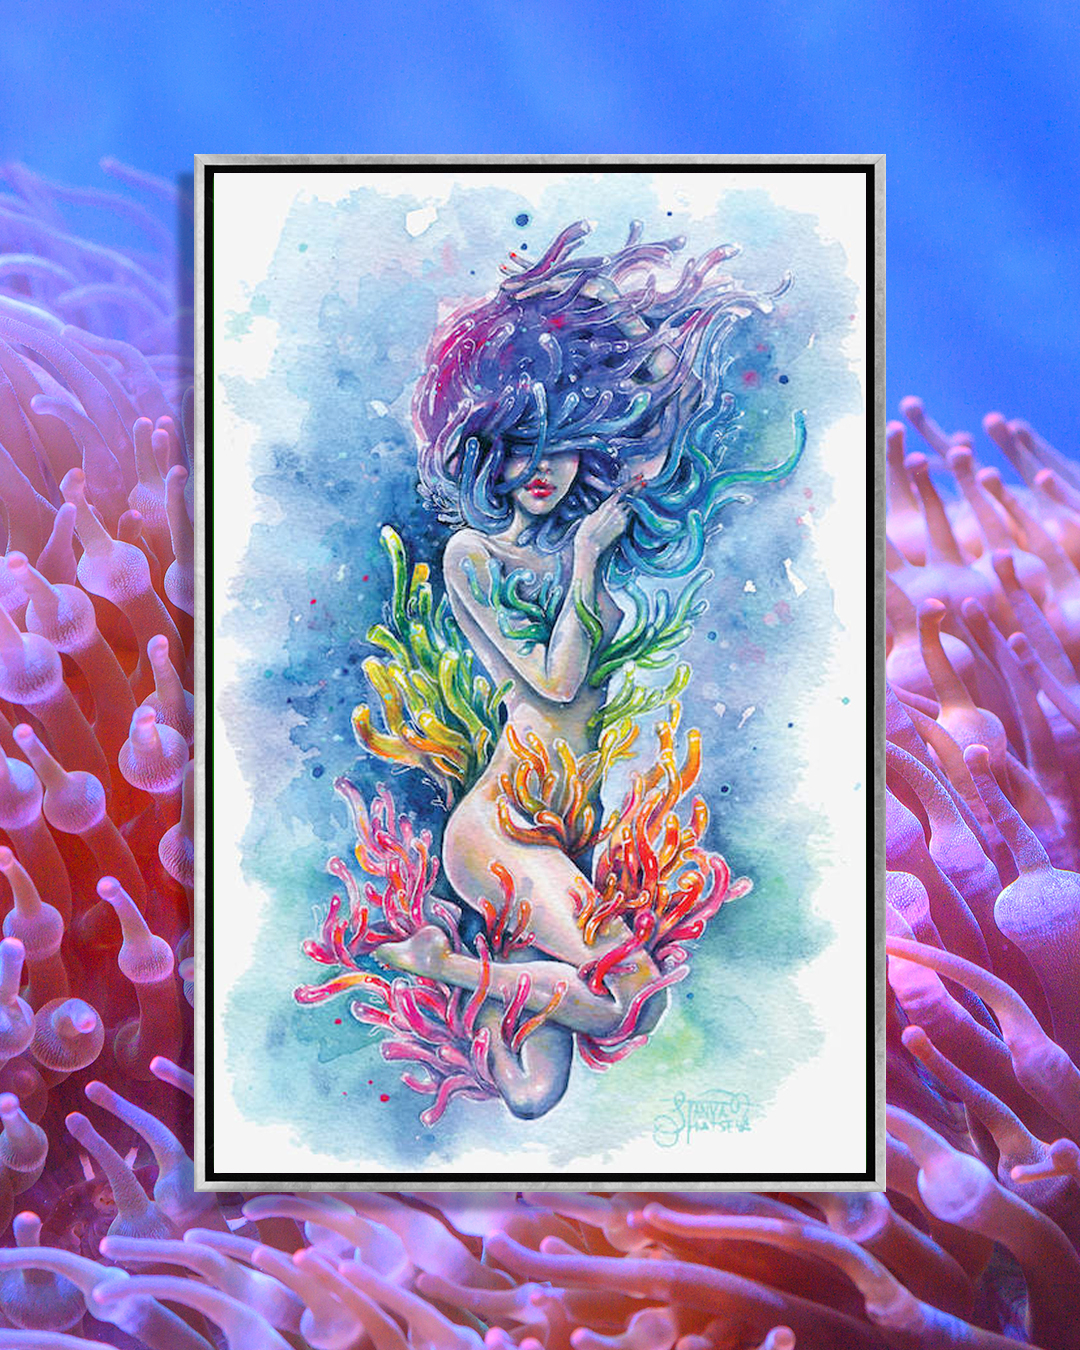 woman in water surrounded by rainbow coral including her hair